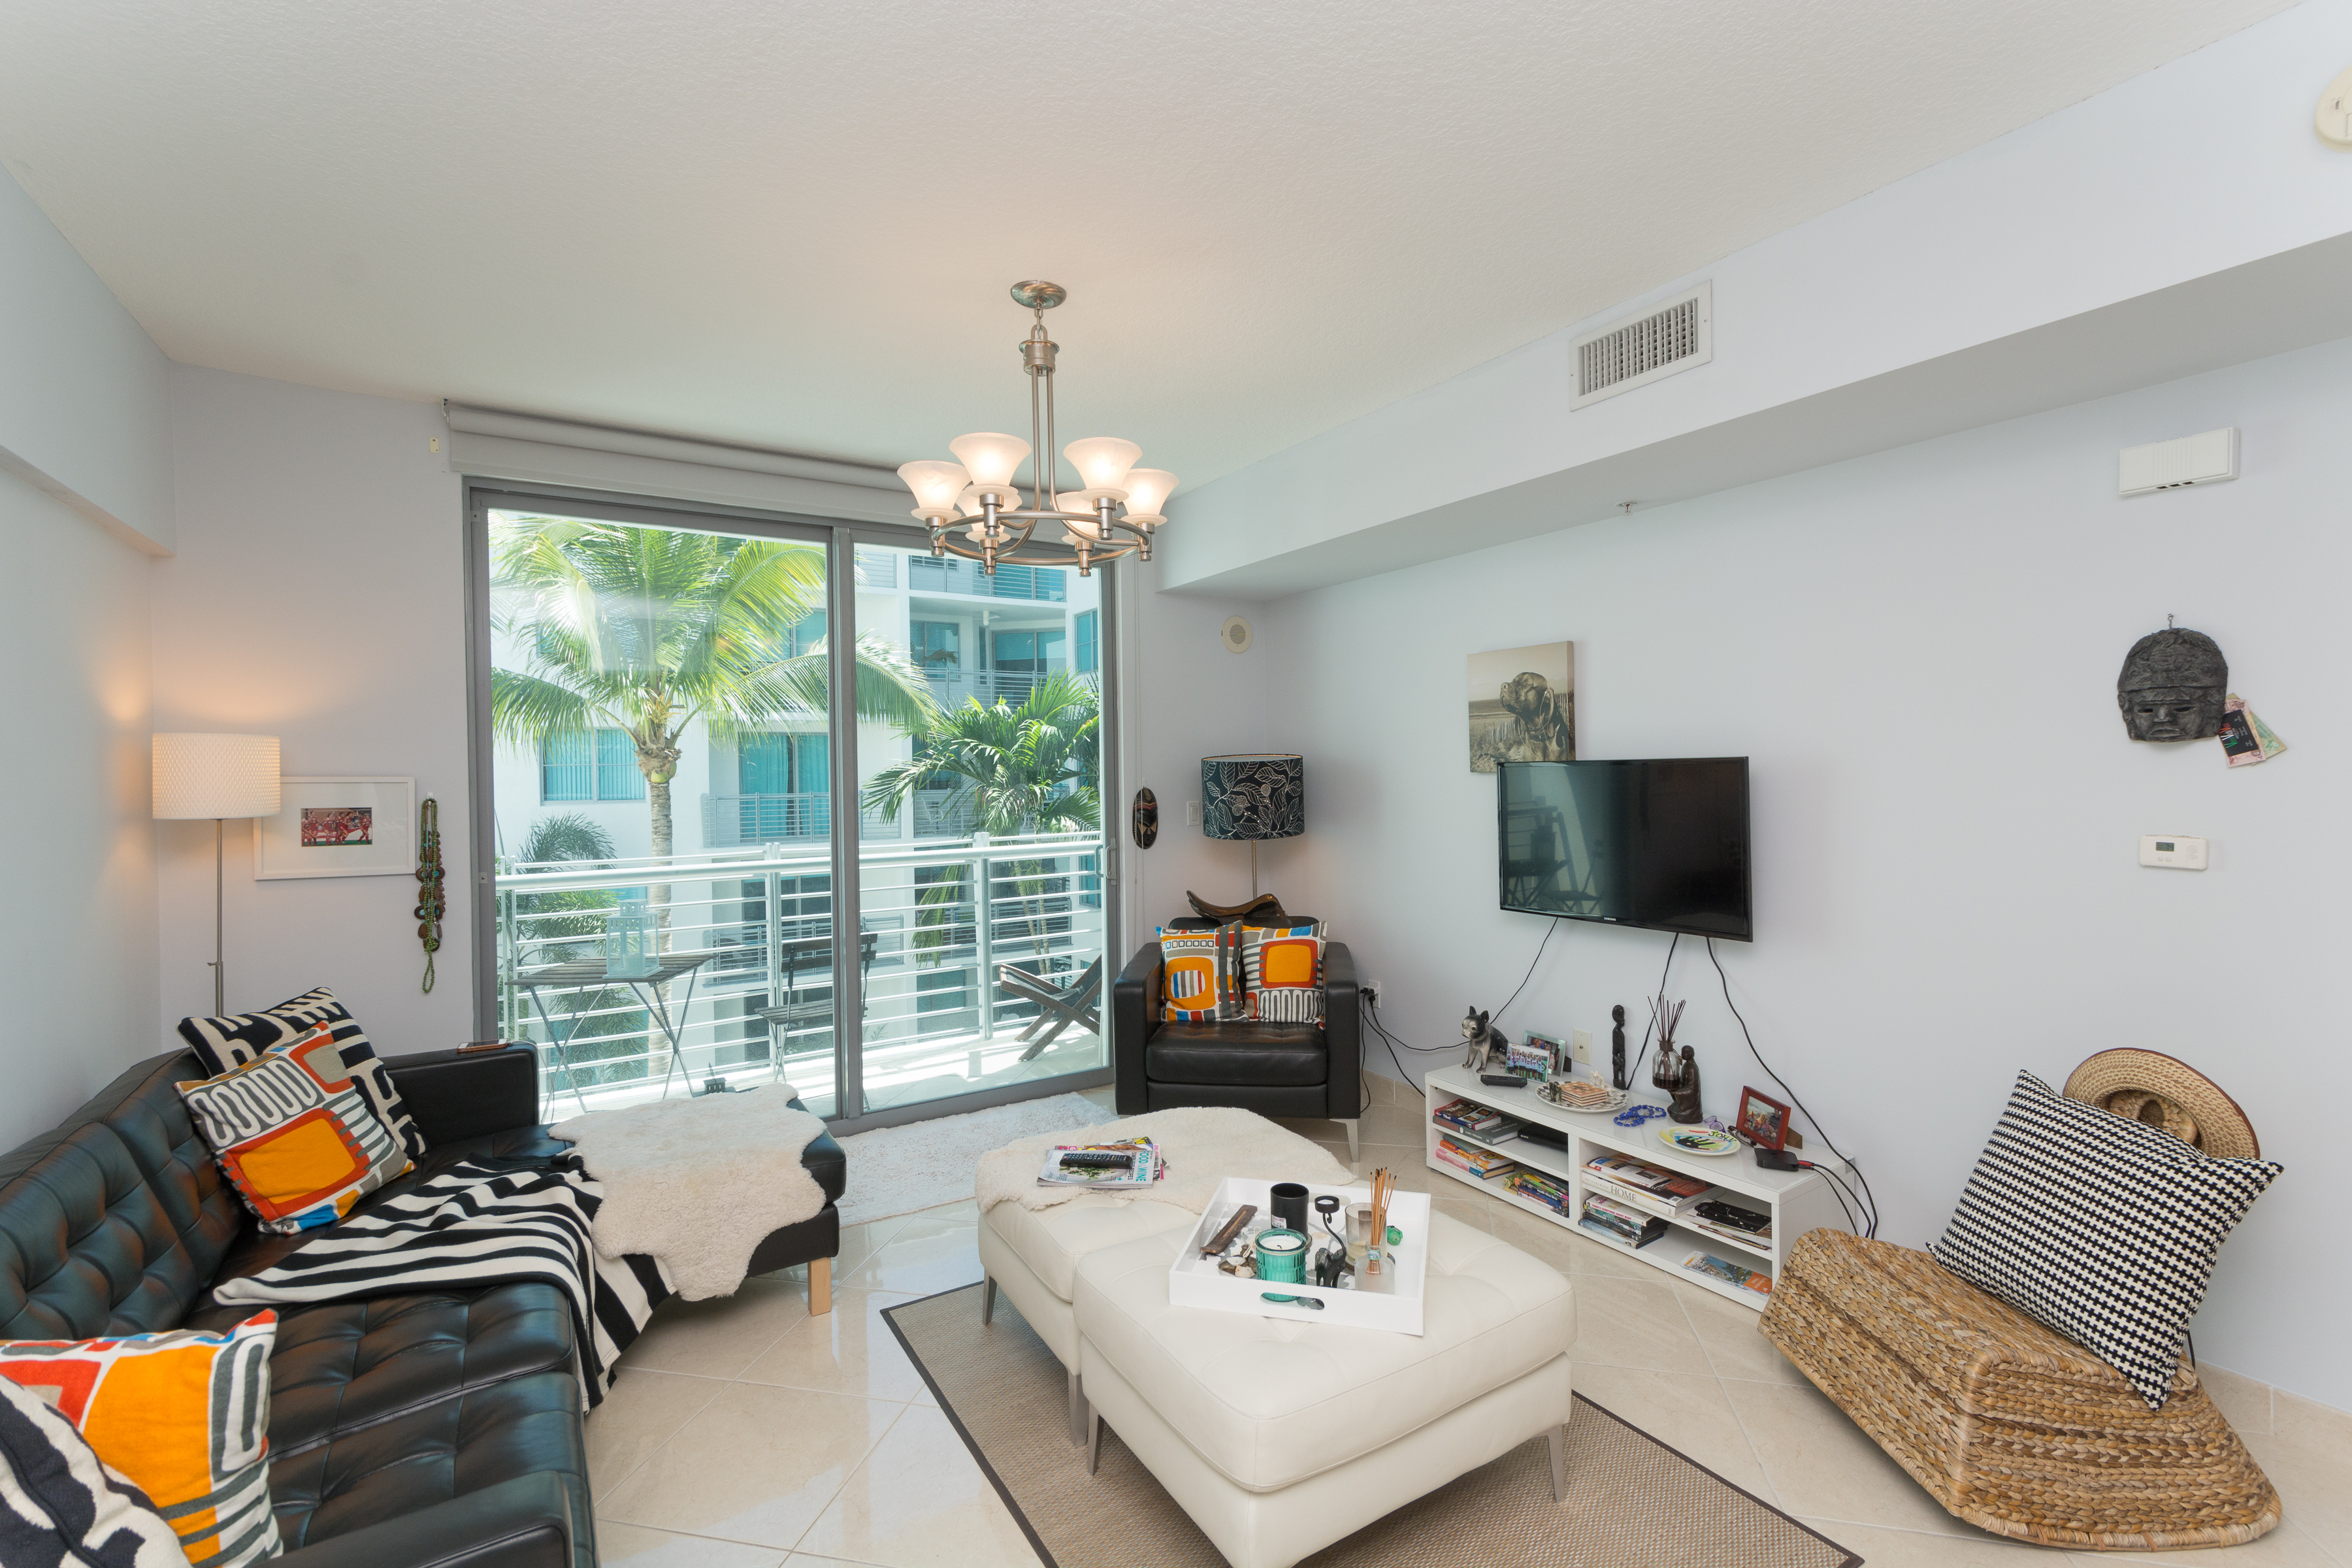 for Sale at 110 Washington Ave #1618 110 Washington Ave 1618 Miami Beach, Florida, 33139 United States